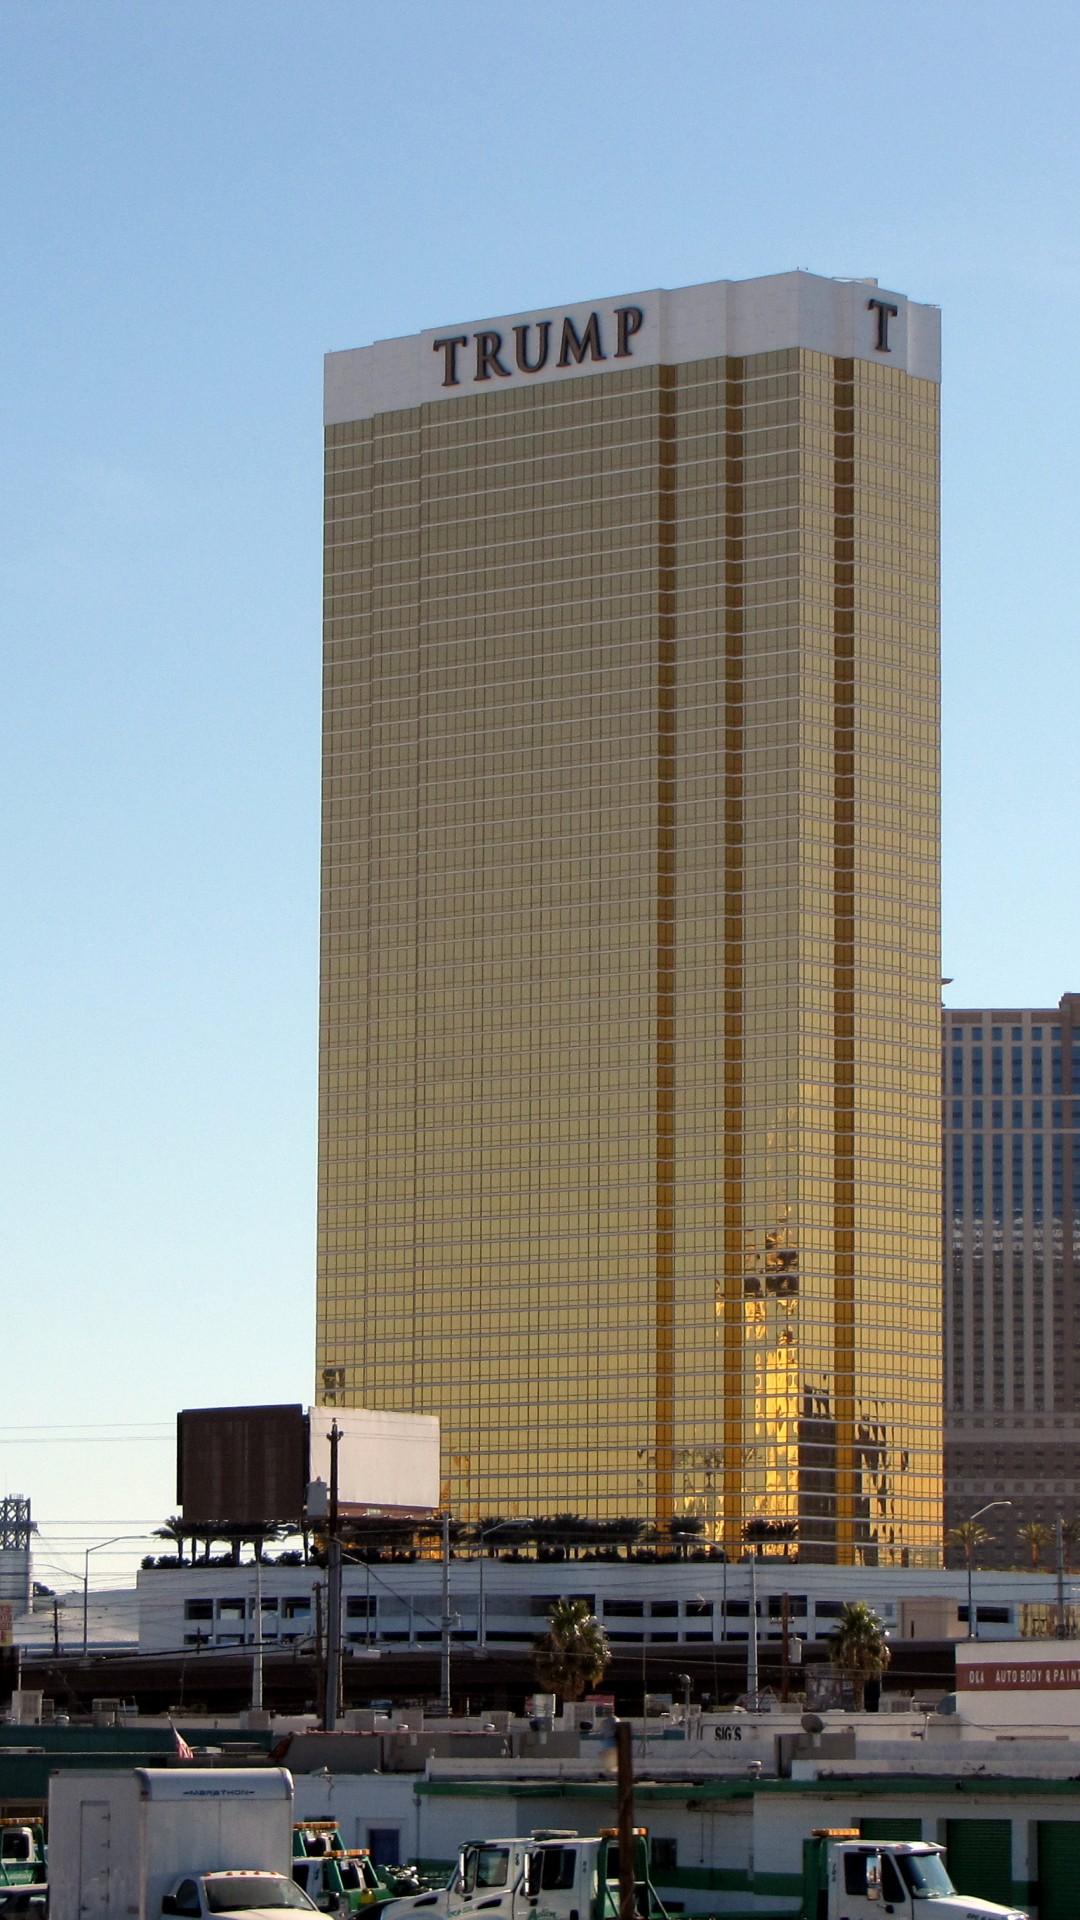 Wallpaper Trump Hotel Las Vegas Usa Architecture 12530